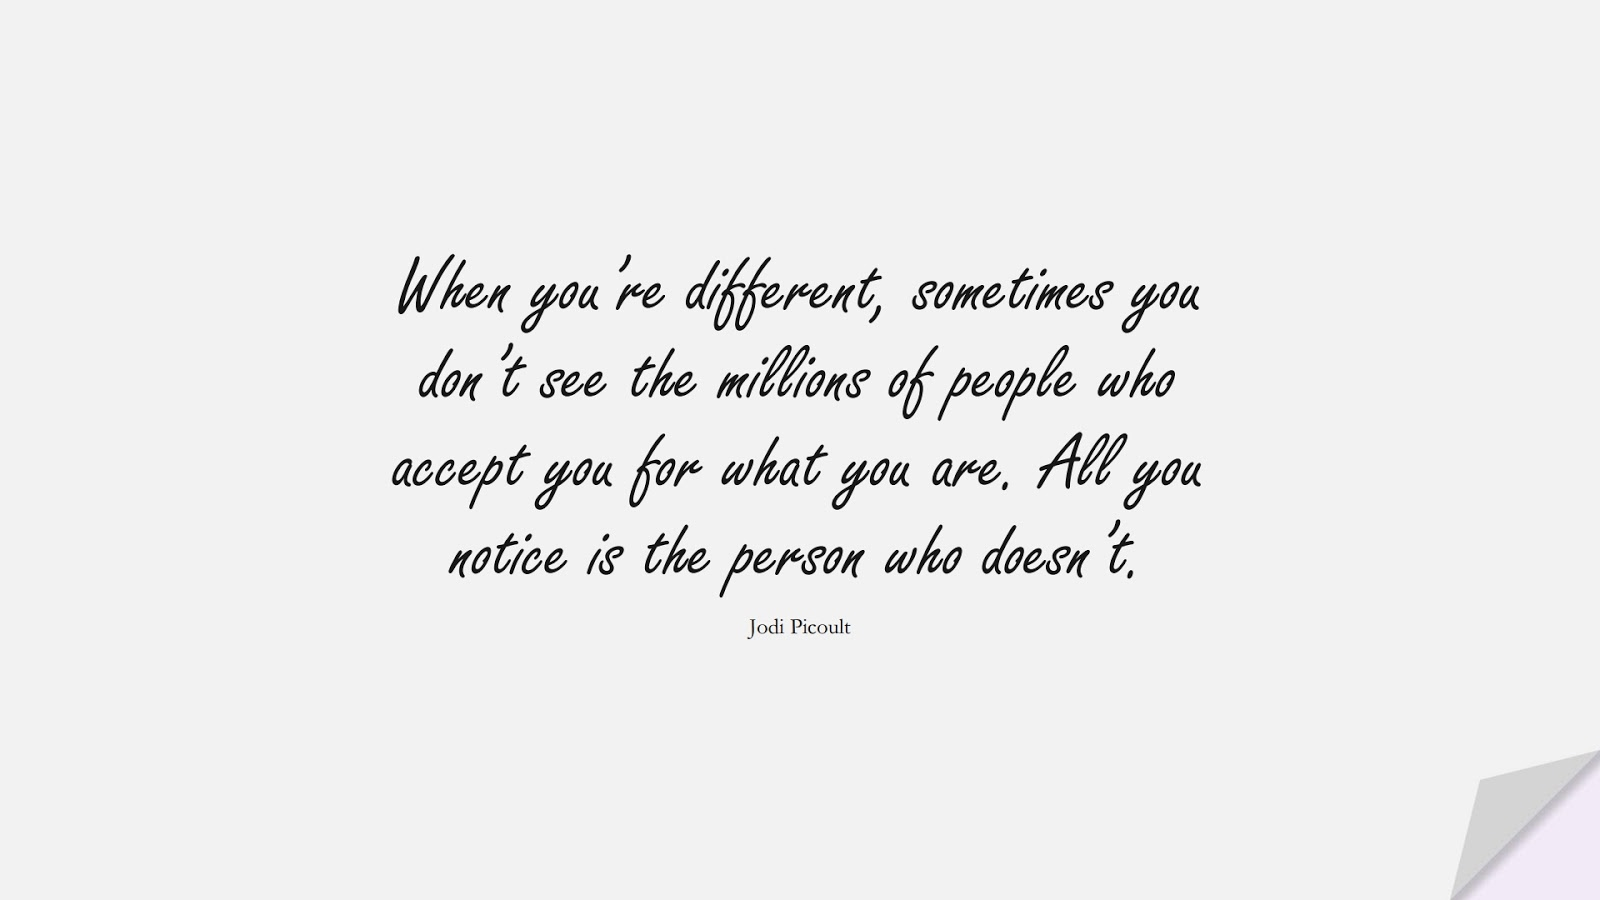 When you're different, sometimes you don't see the millions of people who accept you for what you are. All you notice is the person who doesn't. (Jodi Picoult);  #InspirationalQuotes